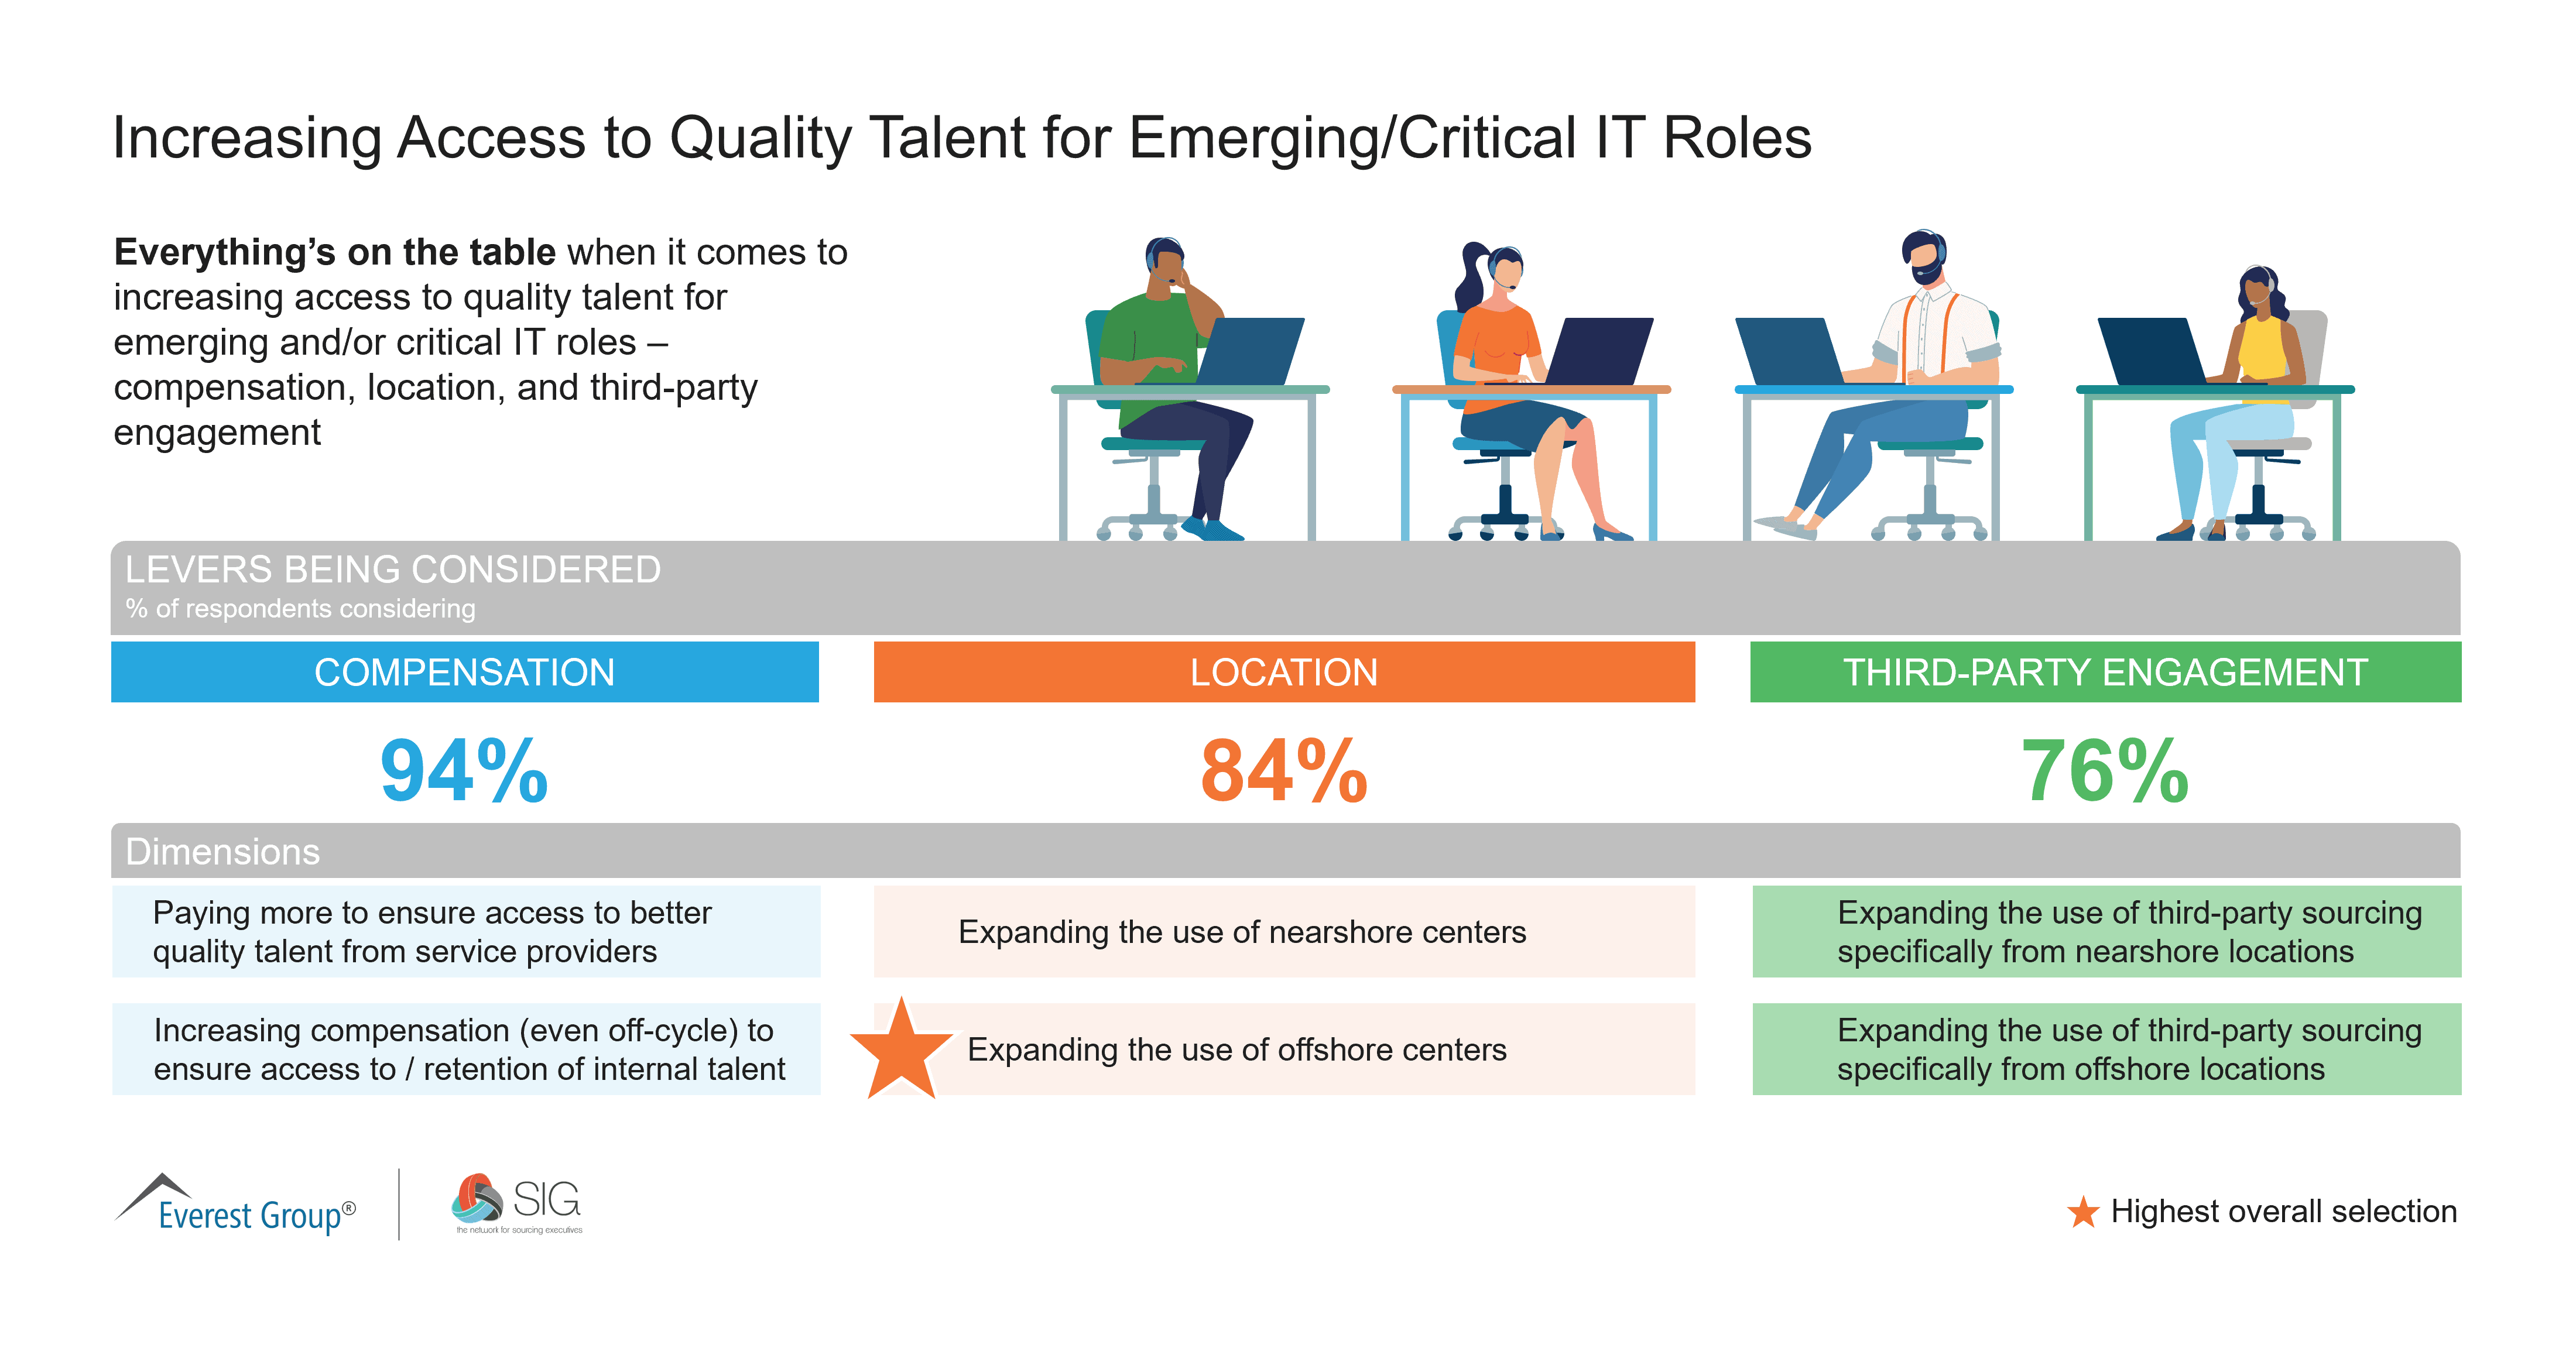 Increasing Access to Quality Talent for Emerging-Critical IT Roles